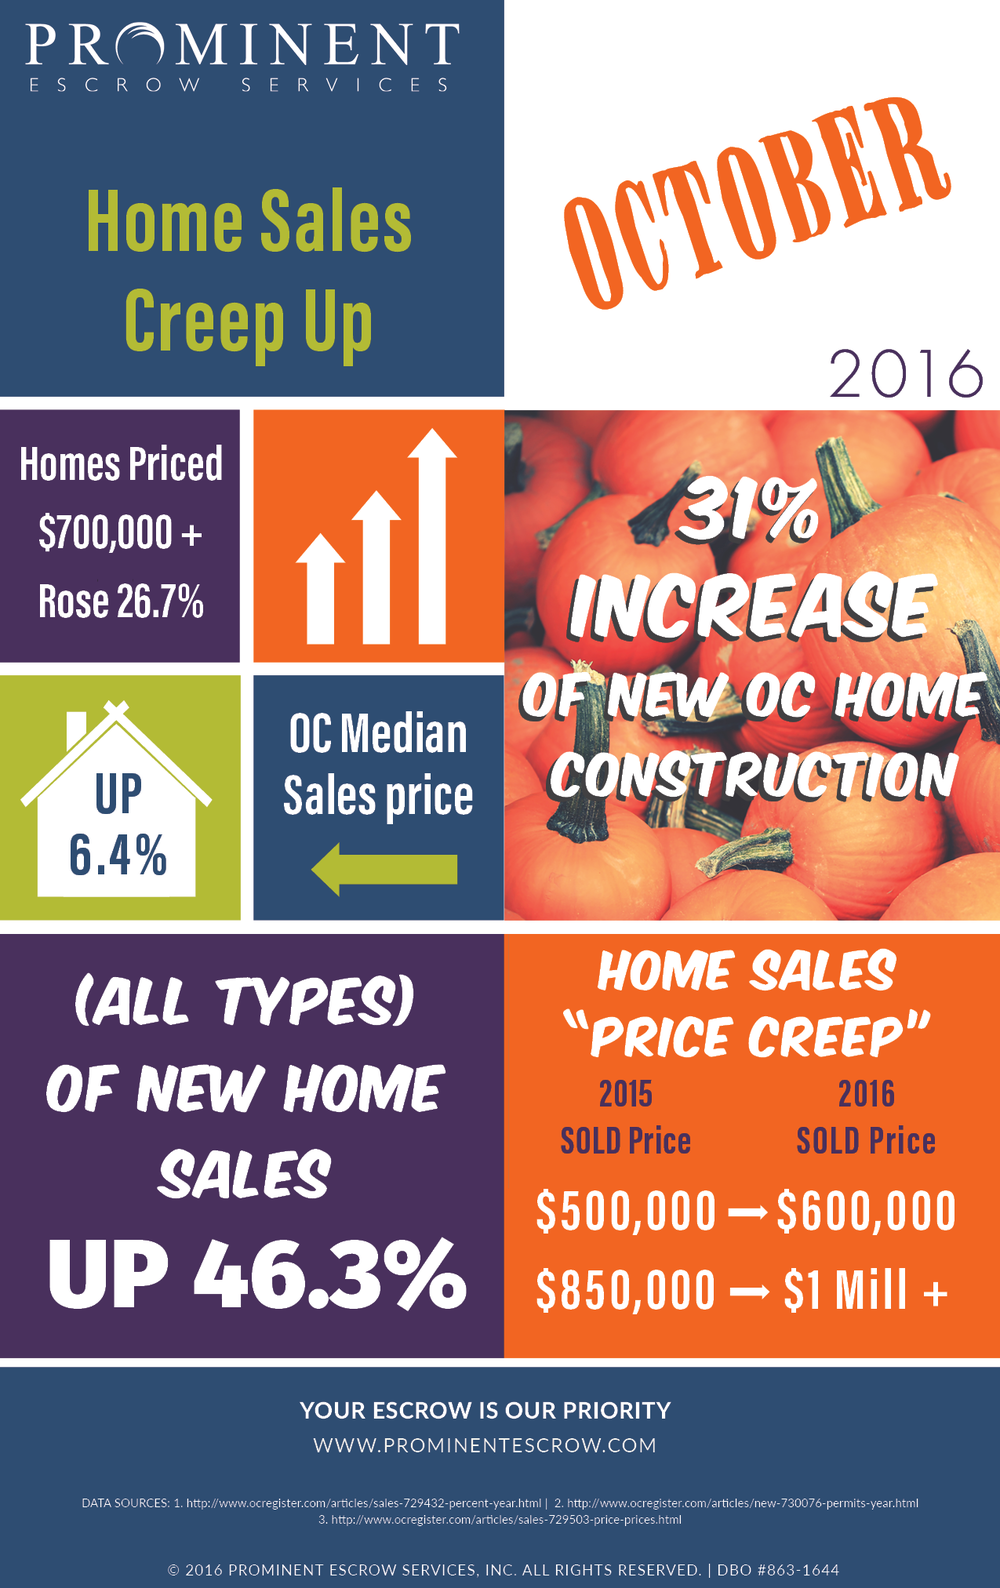 10-3-16 Home-Sales-Creep-Up-October-2016-1.png